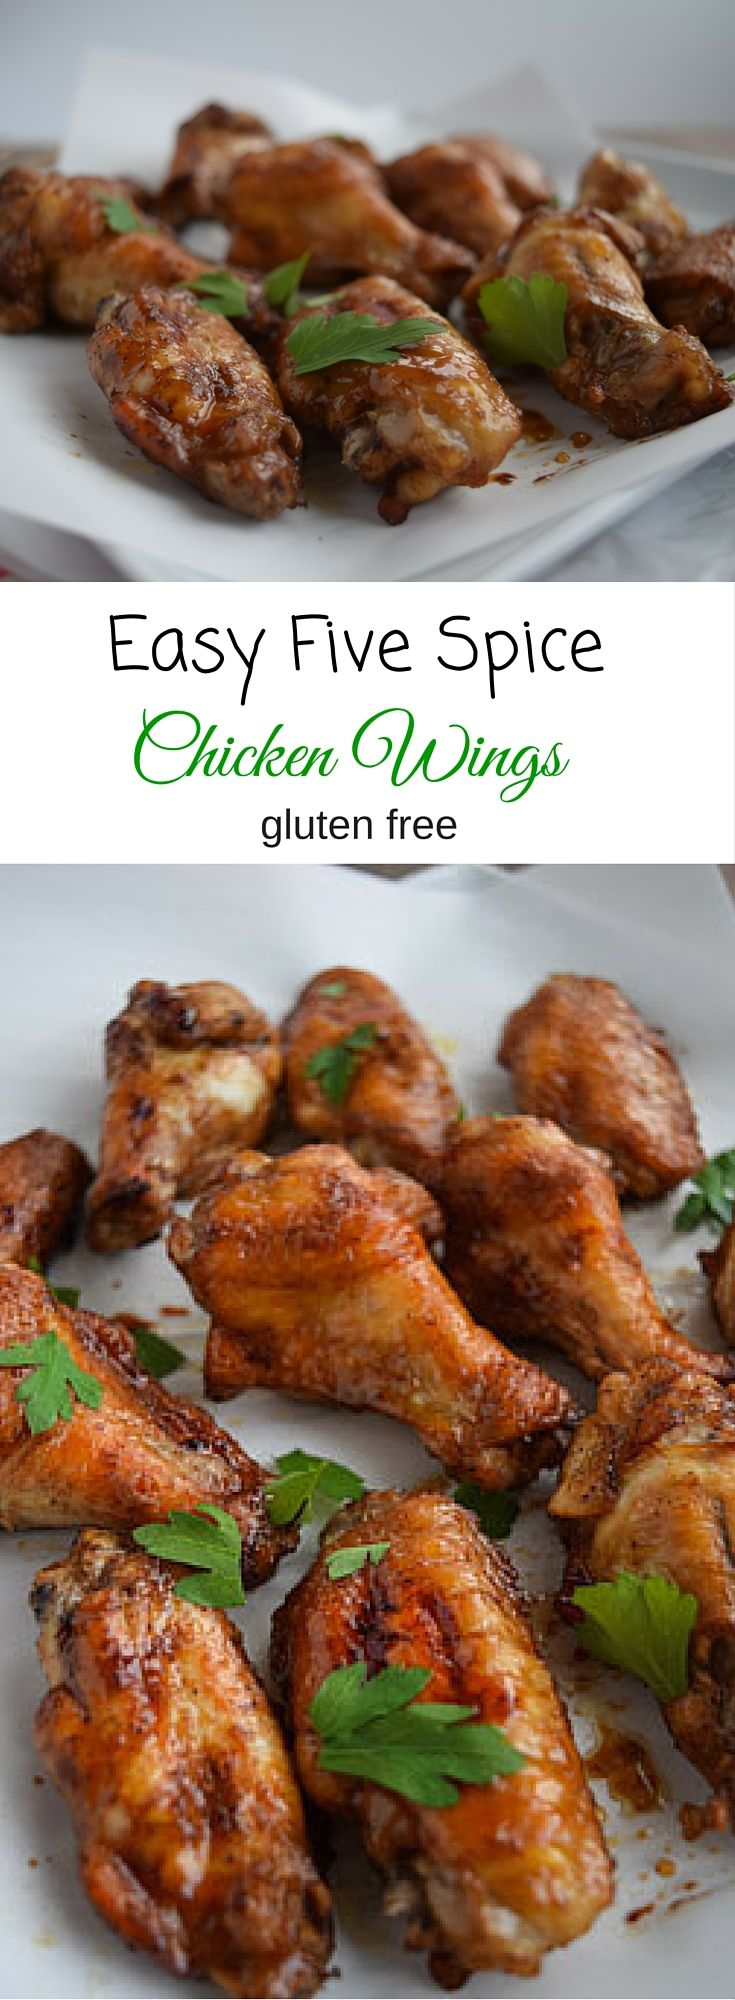 Easy Five Spice Chicken Wings are a great treat for the big game.  Gluten free and easy to prepare. www.seasonalcravings.com